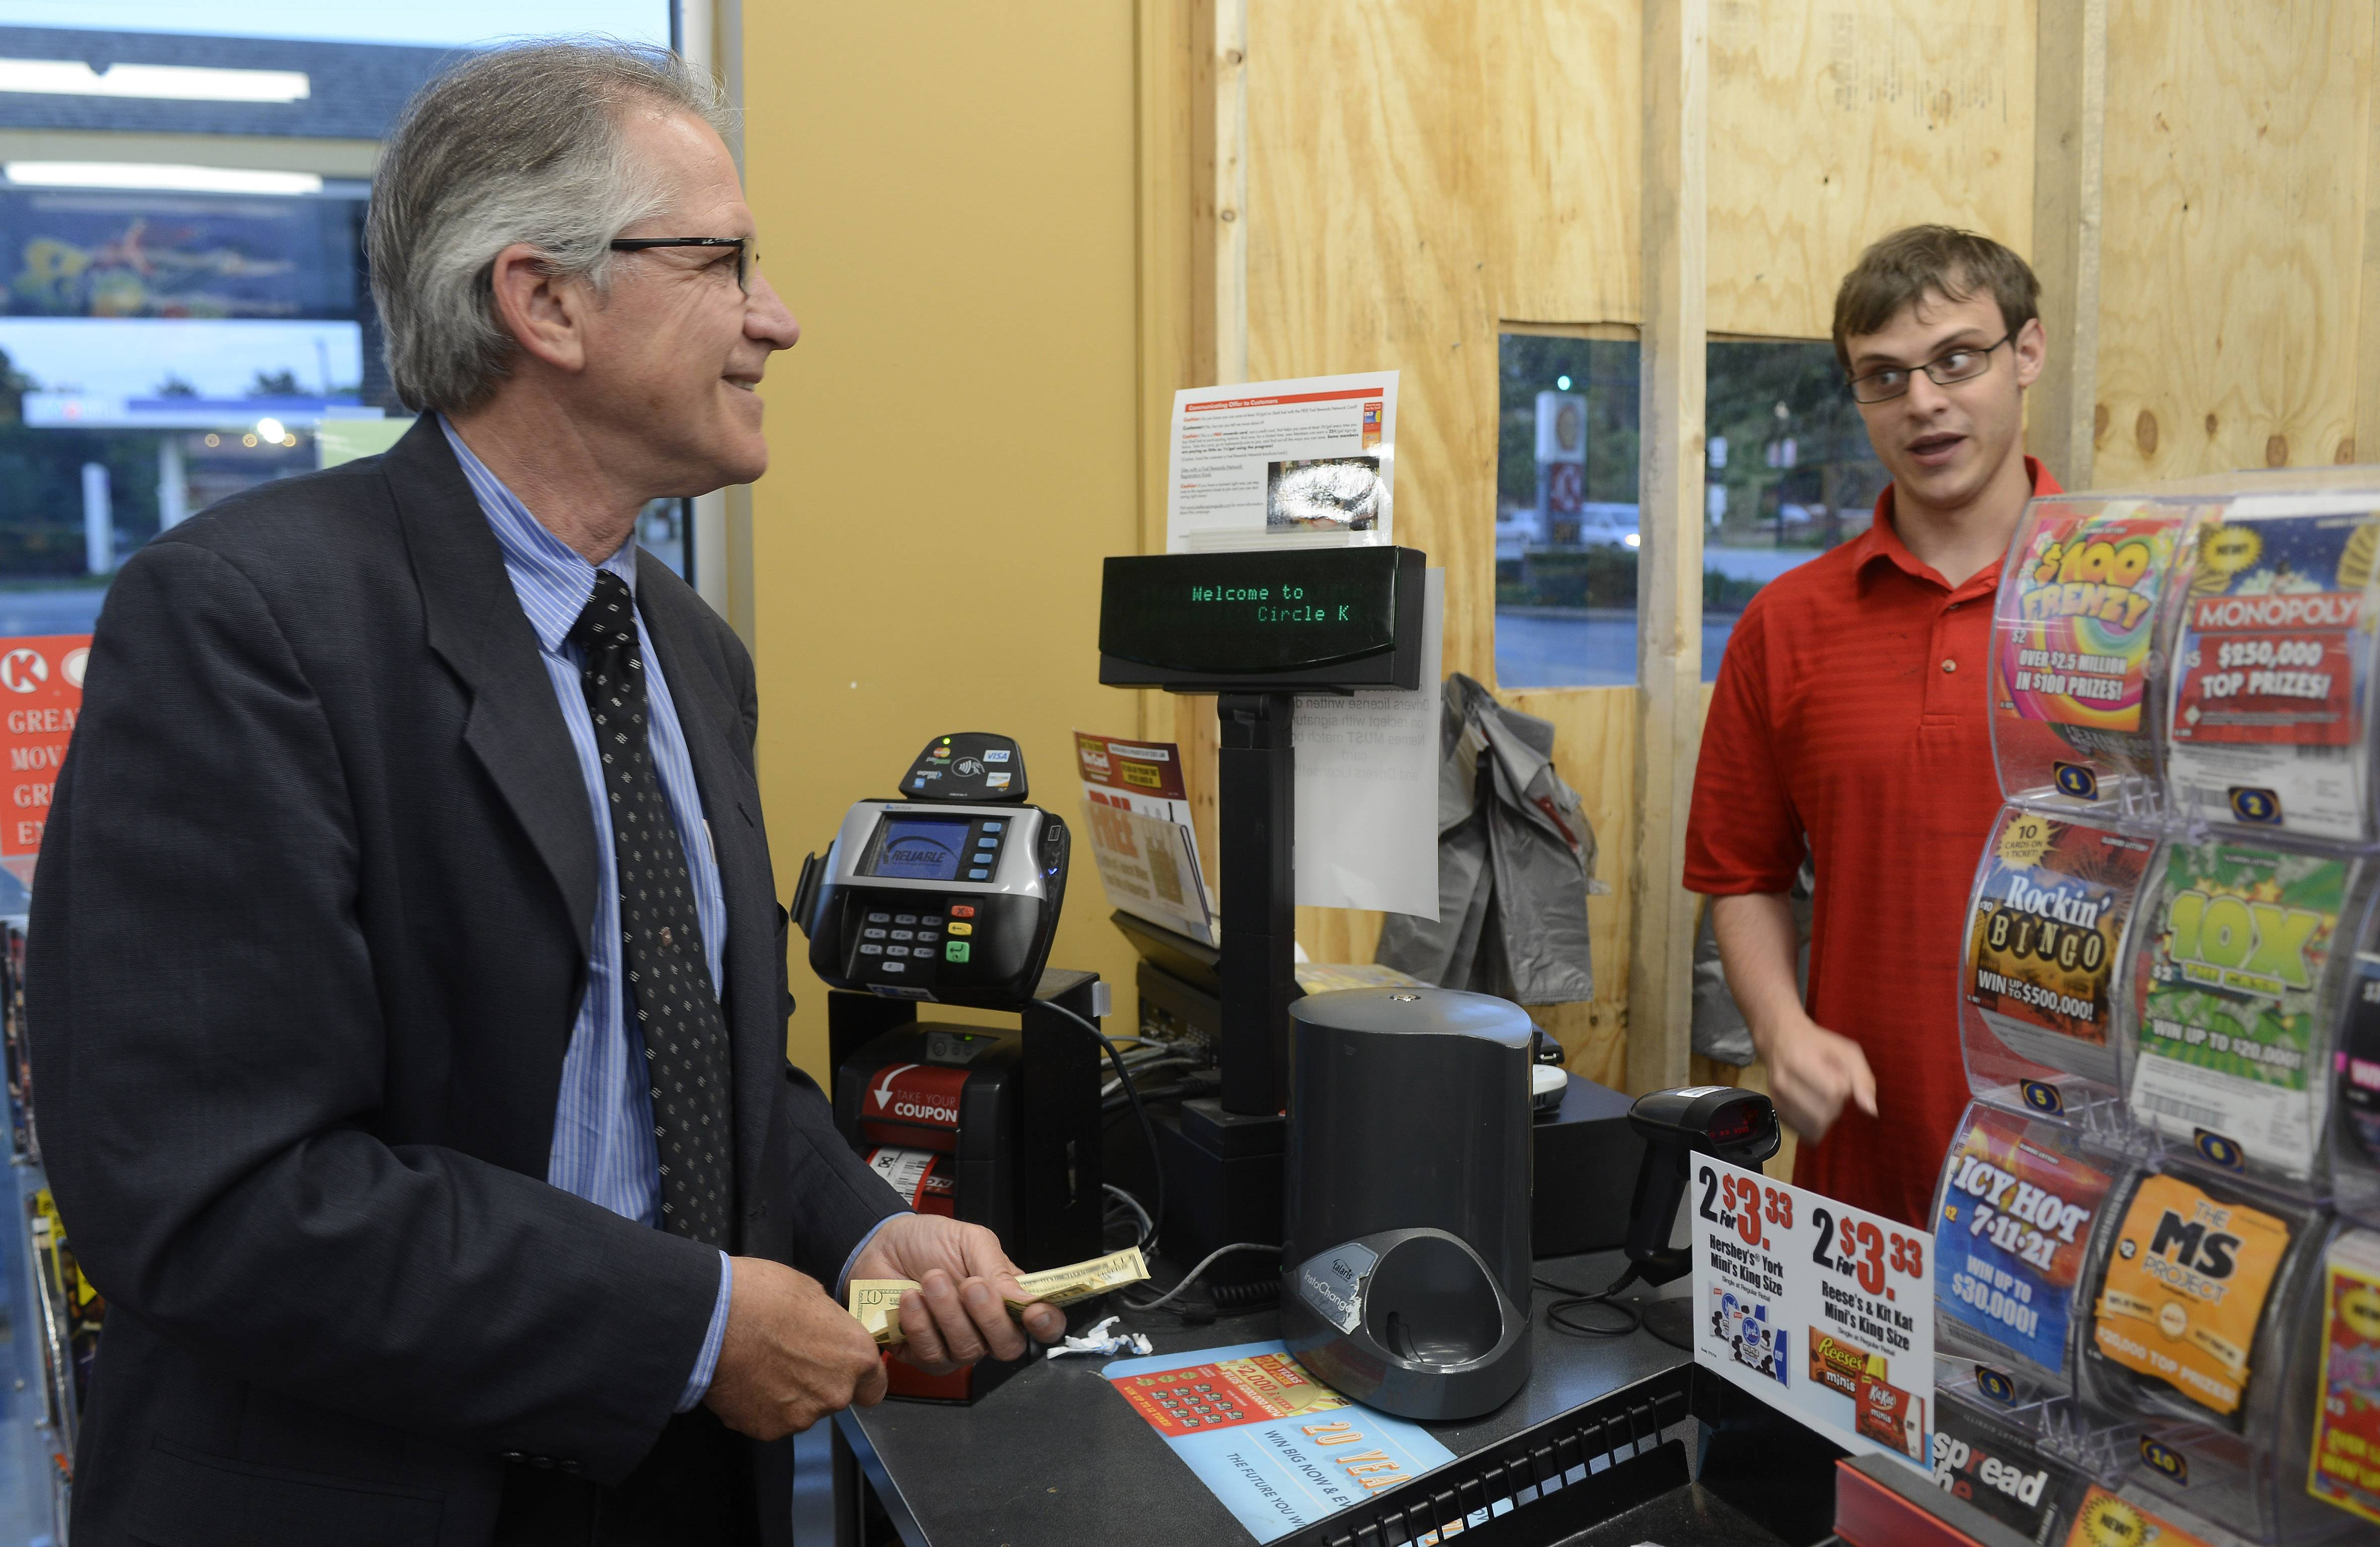 Ray Witczak of Barrington, left, talks to clerk Aaron Adams while playing the lottery at the Circle K convenience store on Lake-Cook Road in Barrington.